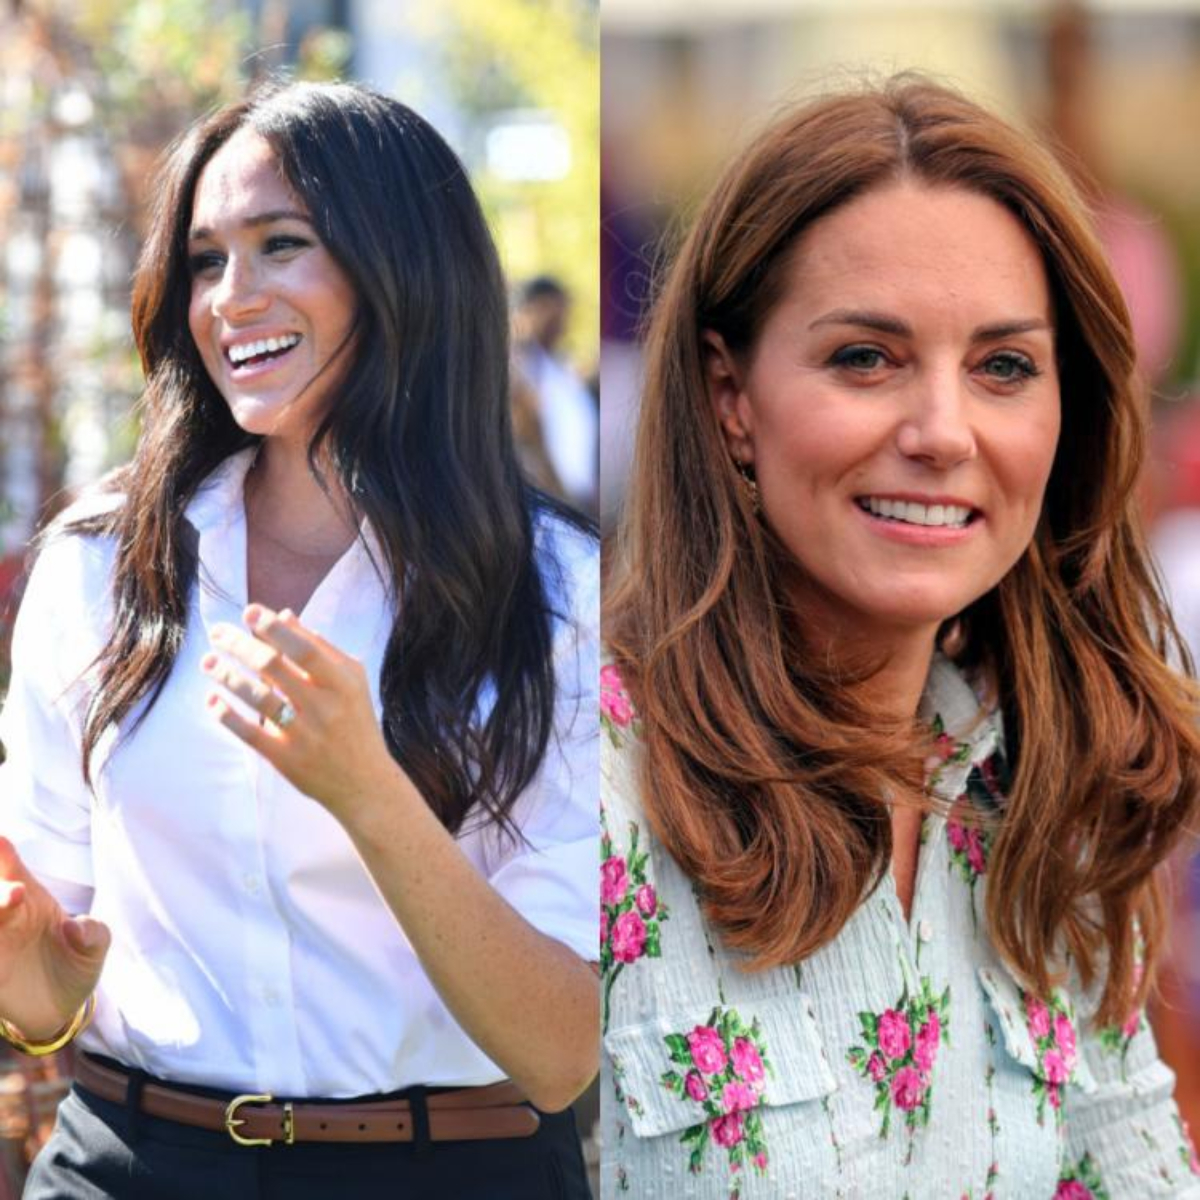 Meghan Markle ignored THIS royal rule during pregnancy that Kate Middleton followed